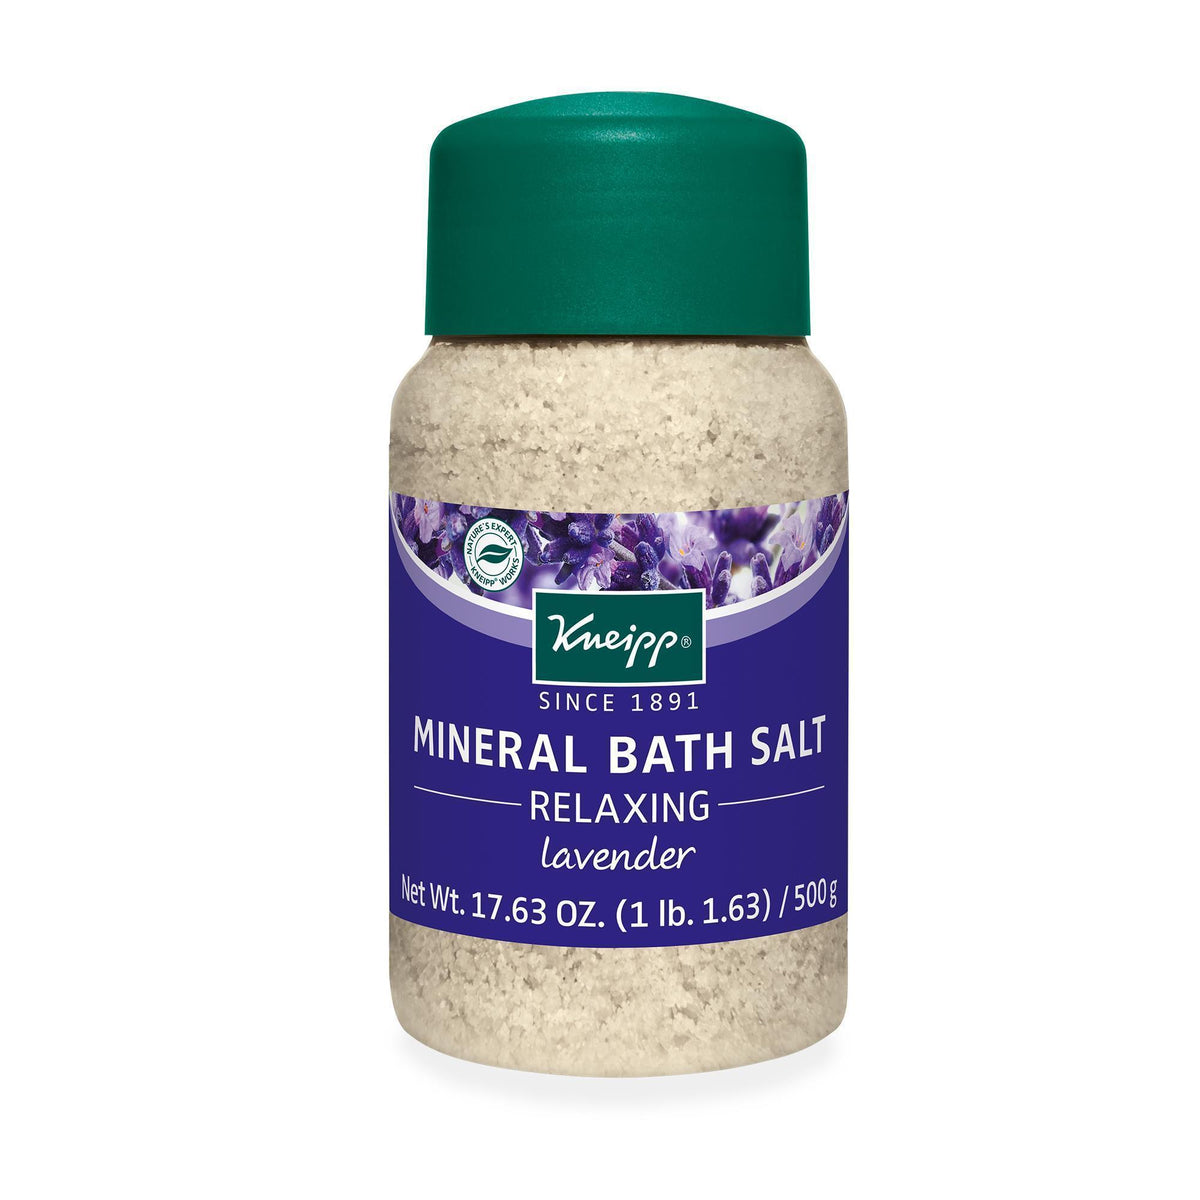 Kneipp Relaxing Mineral Bath Salt